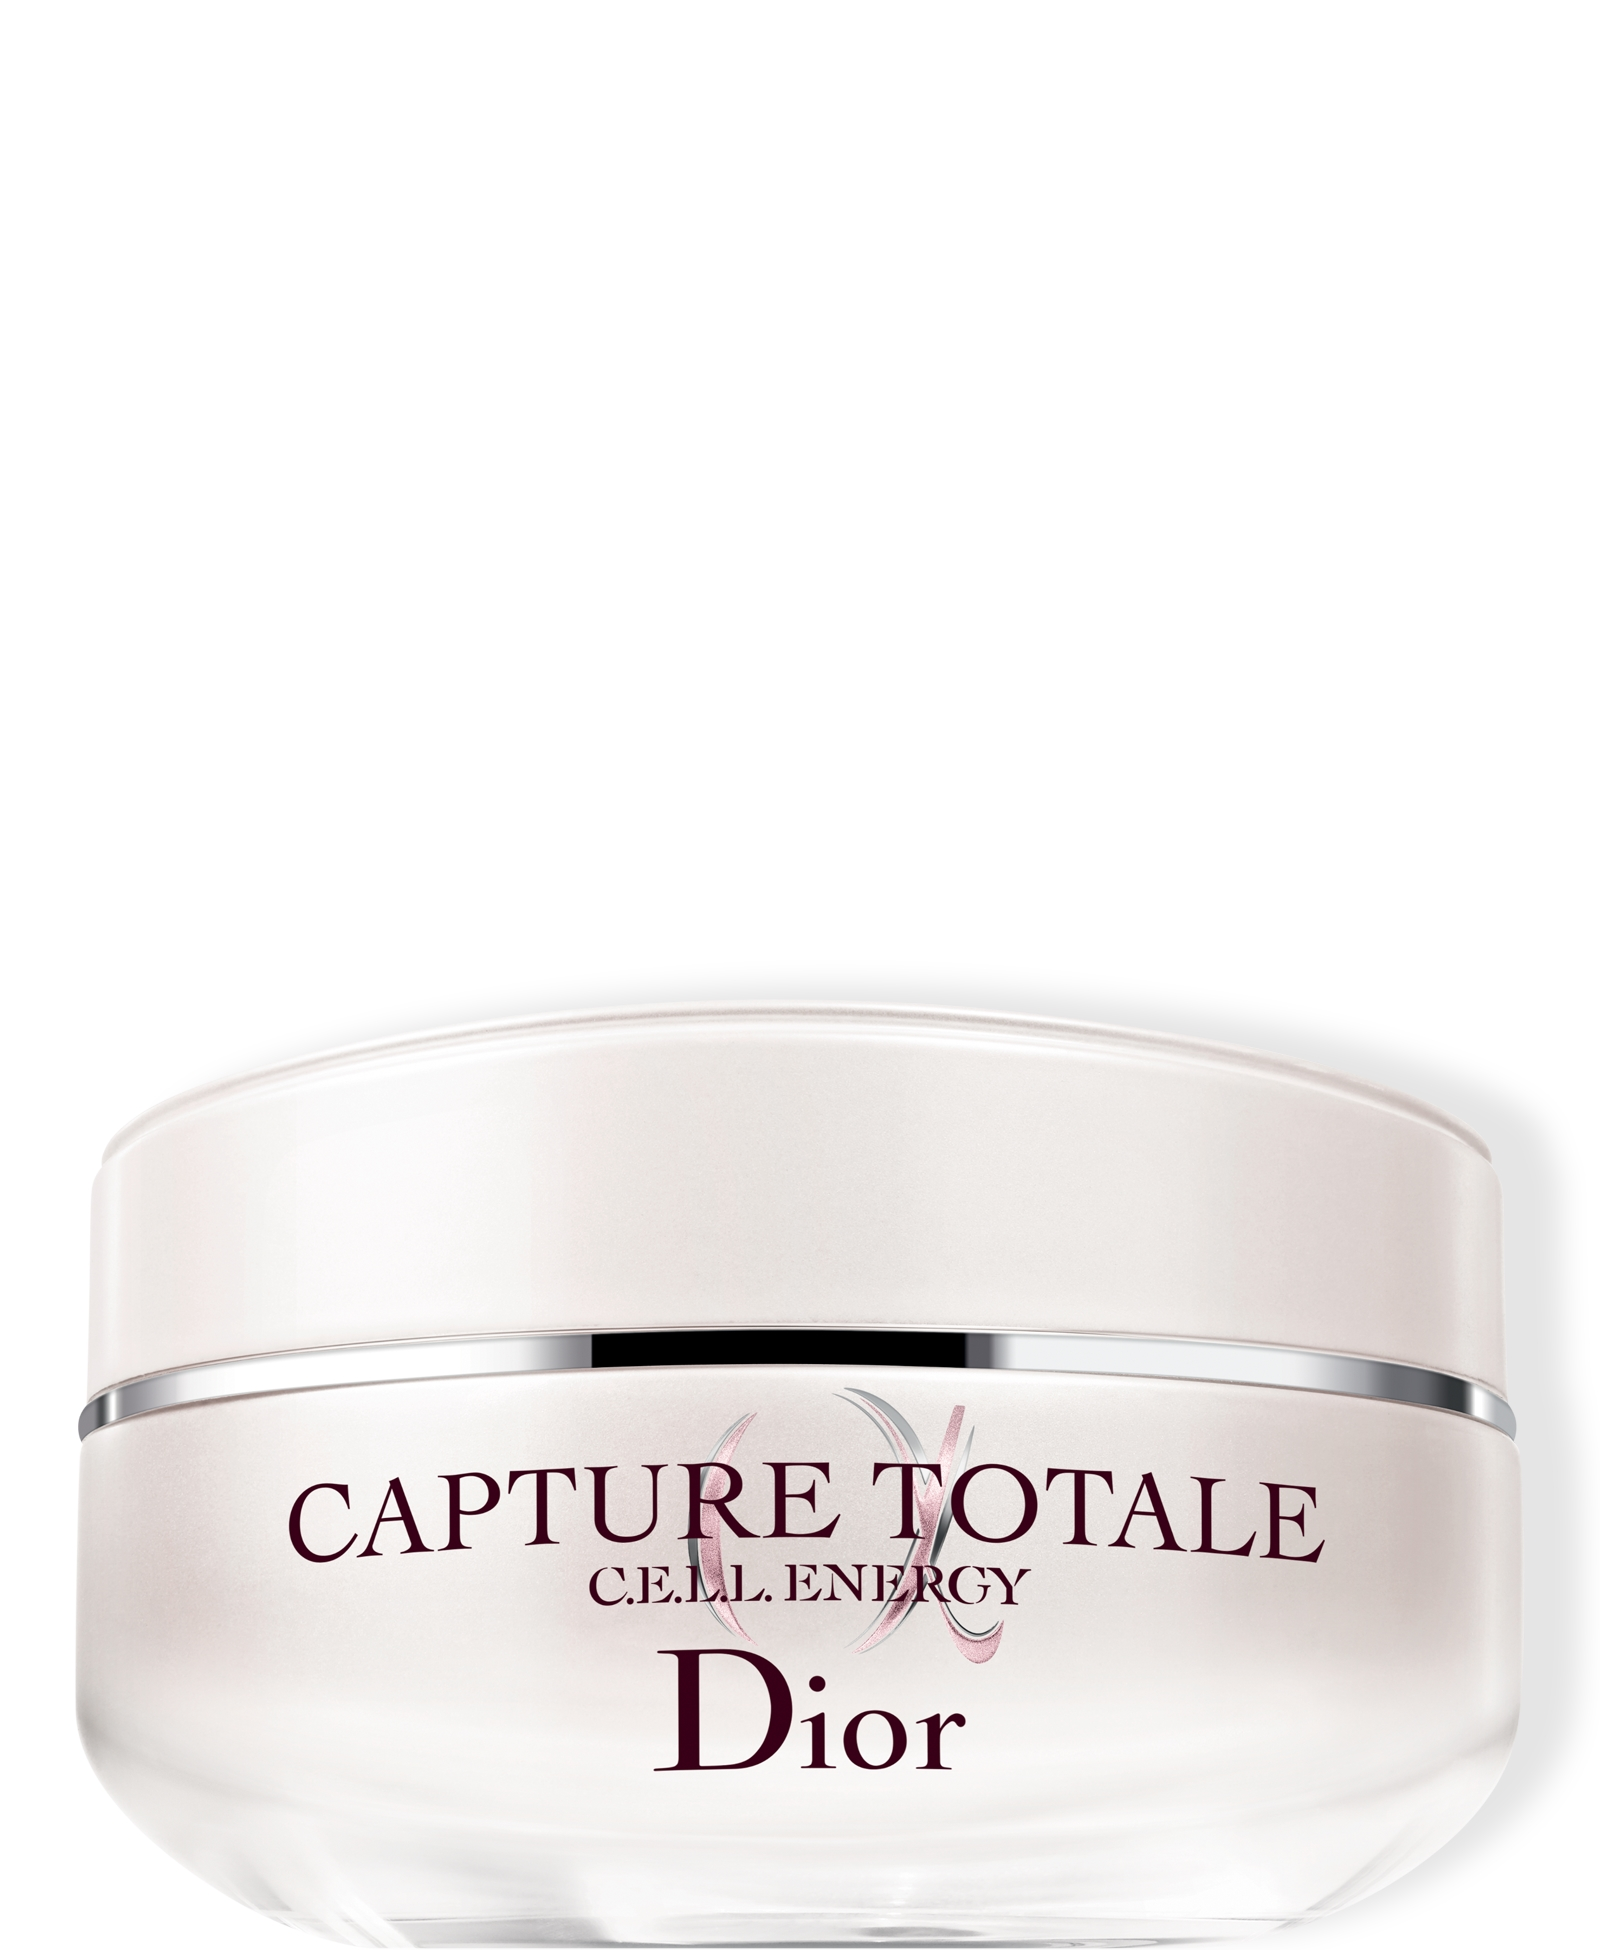 DIOR Capture Totale C.E.L.L. ENERGY - Firming & Wrinkle-Correcting Creme, 50 ml